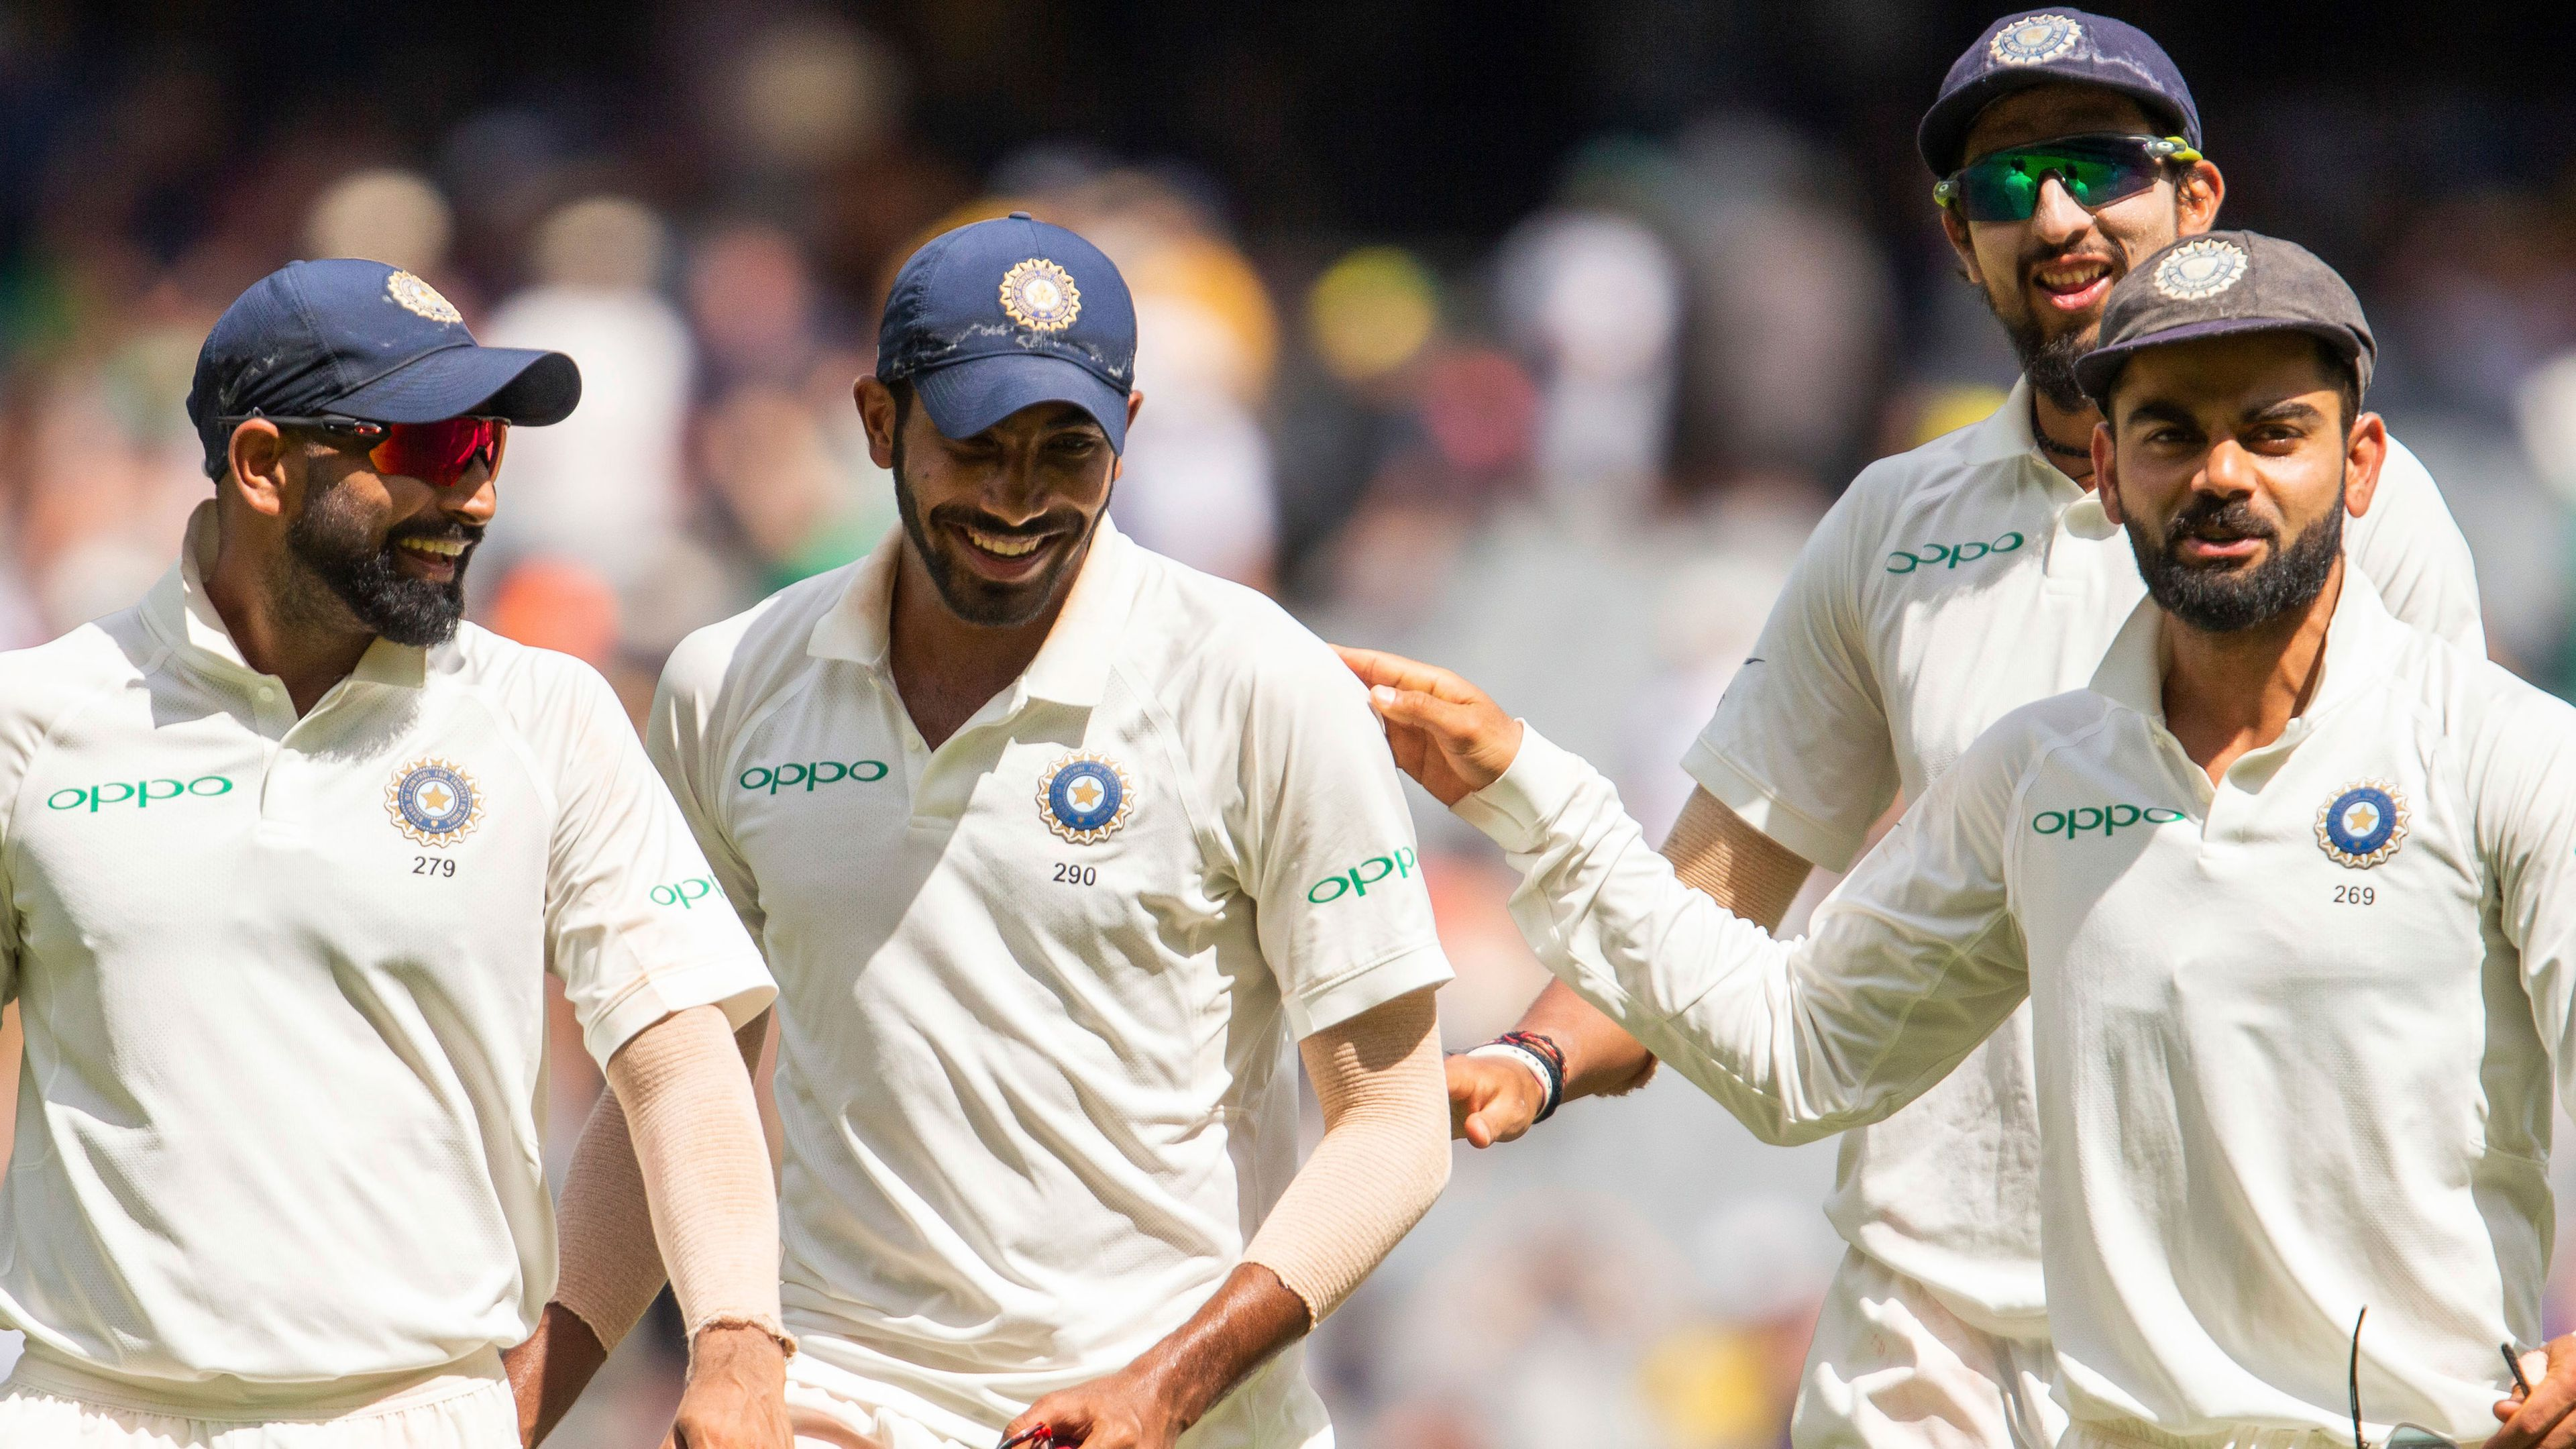 India win third Test to retain Border-Gavaskar Trophy